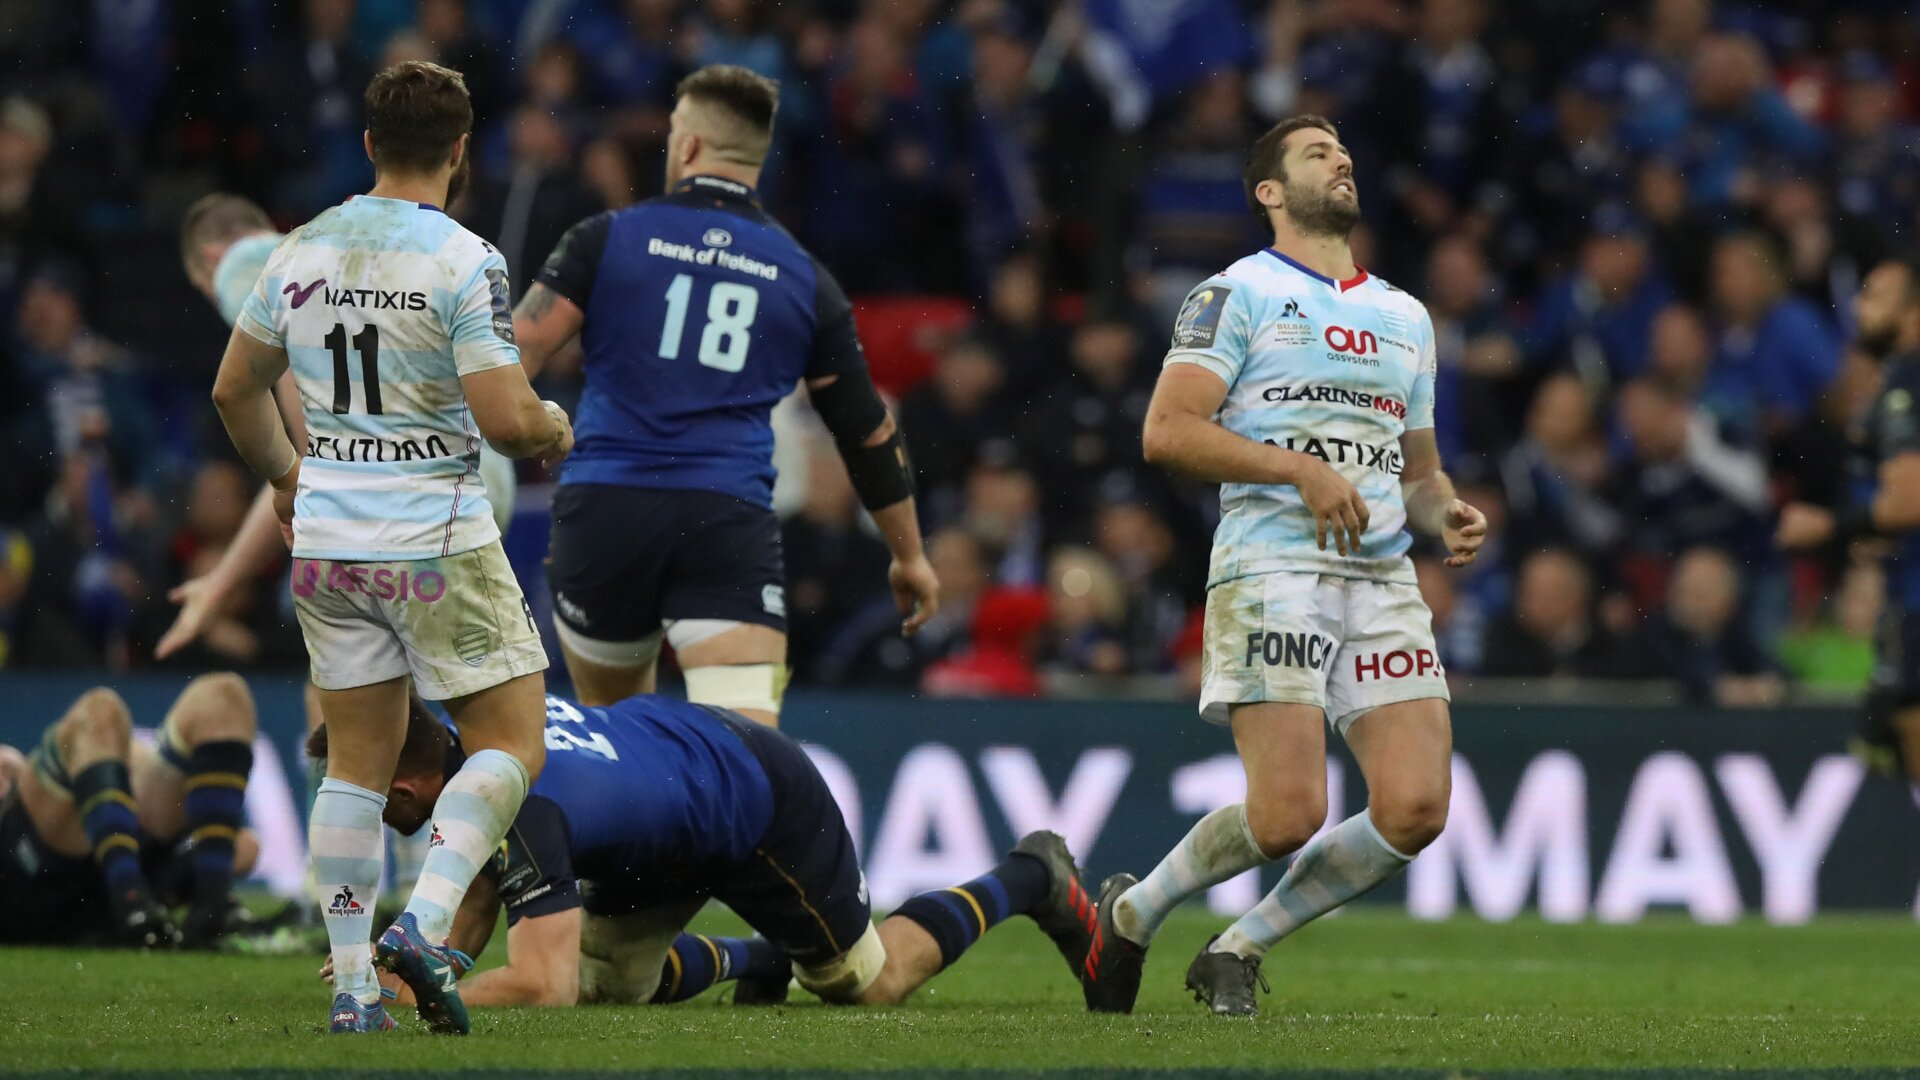 French flyhalf Remi Tales blows 'final whistle' on career